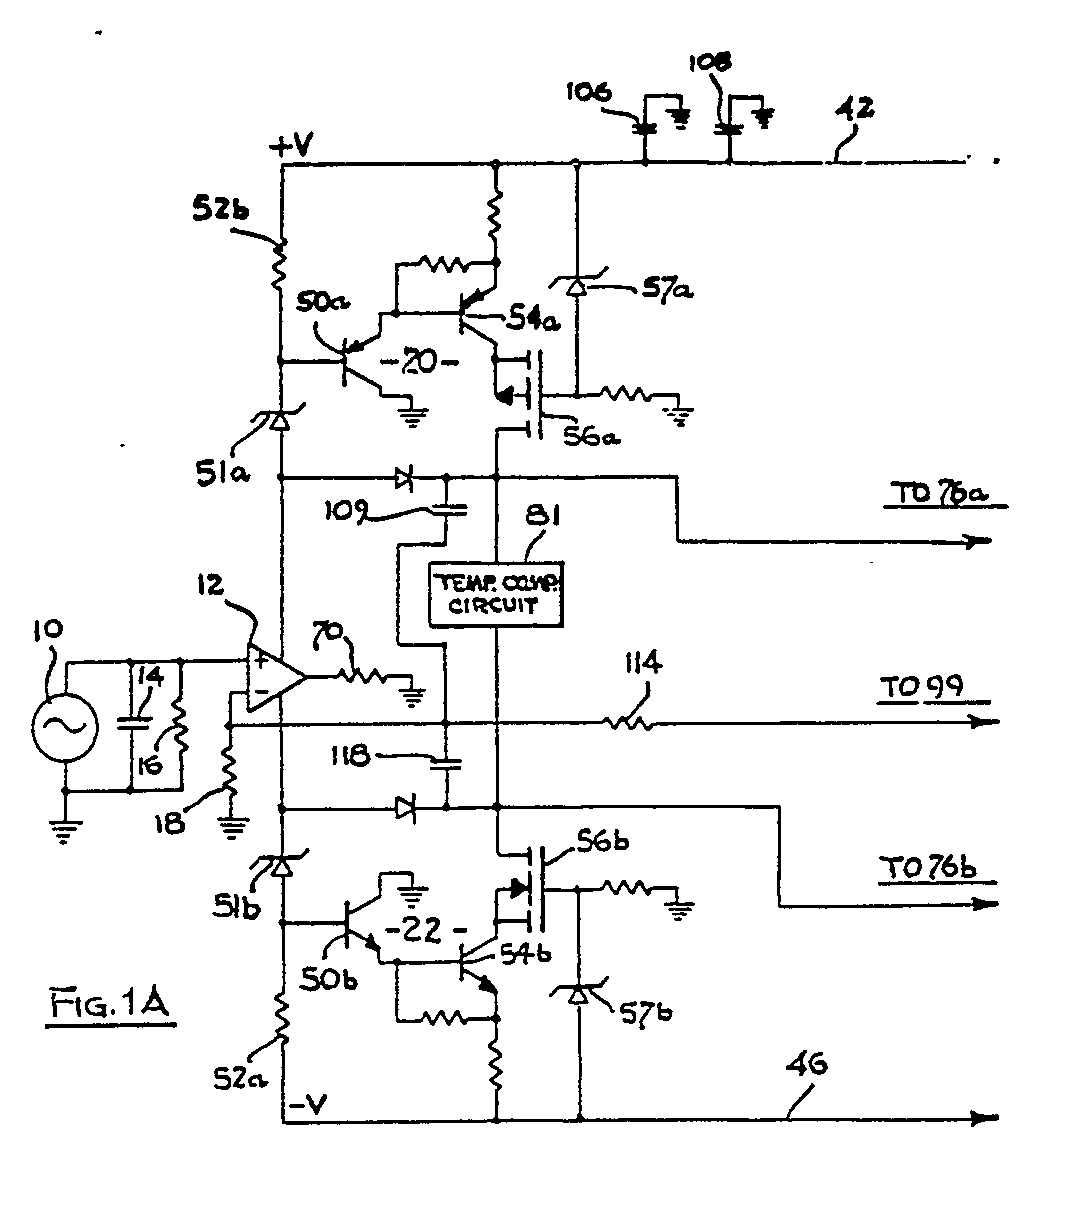 Ep0320540a1 An Audio Amplifier Google Patents Simple Op Amp Inverting Circuit Employing Negative Figure Imgaf001